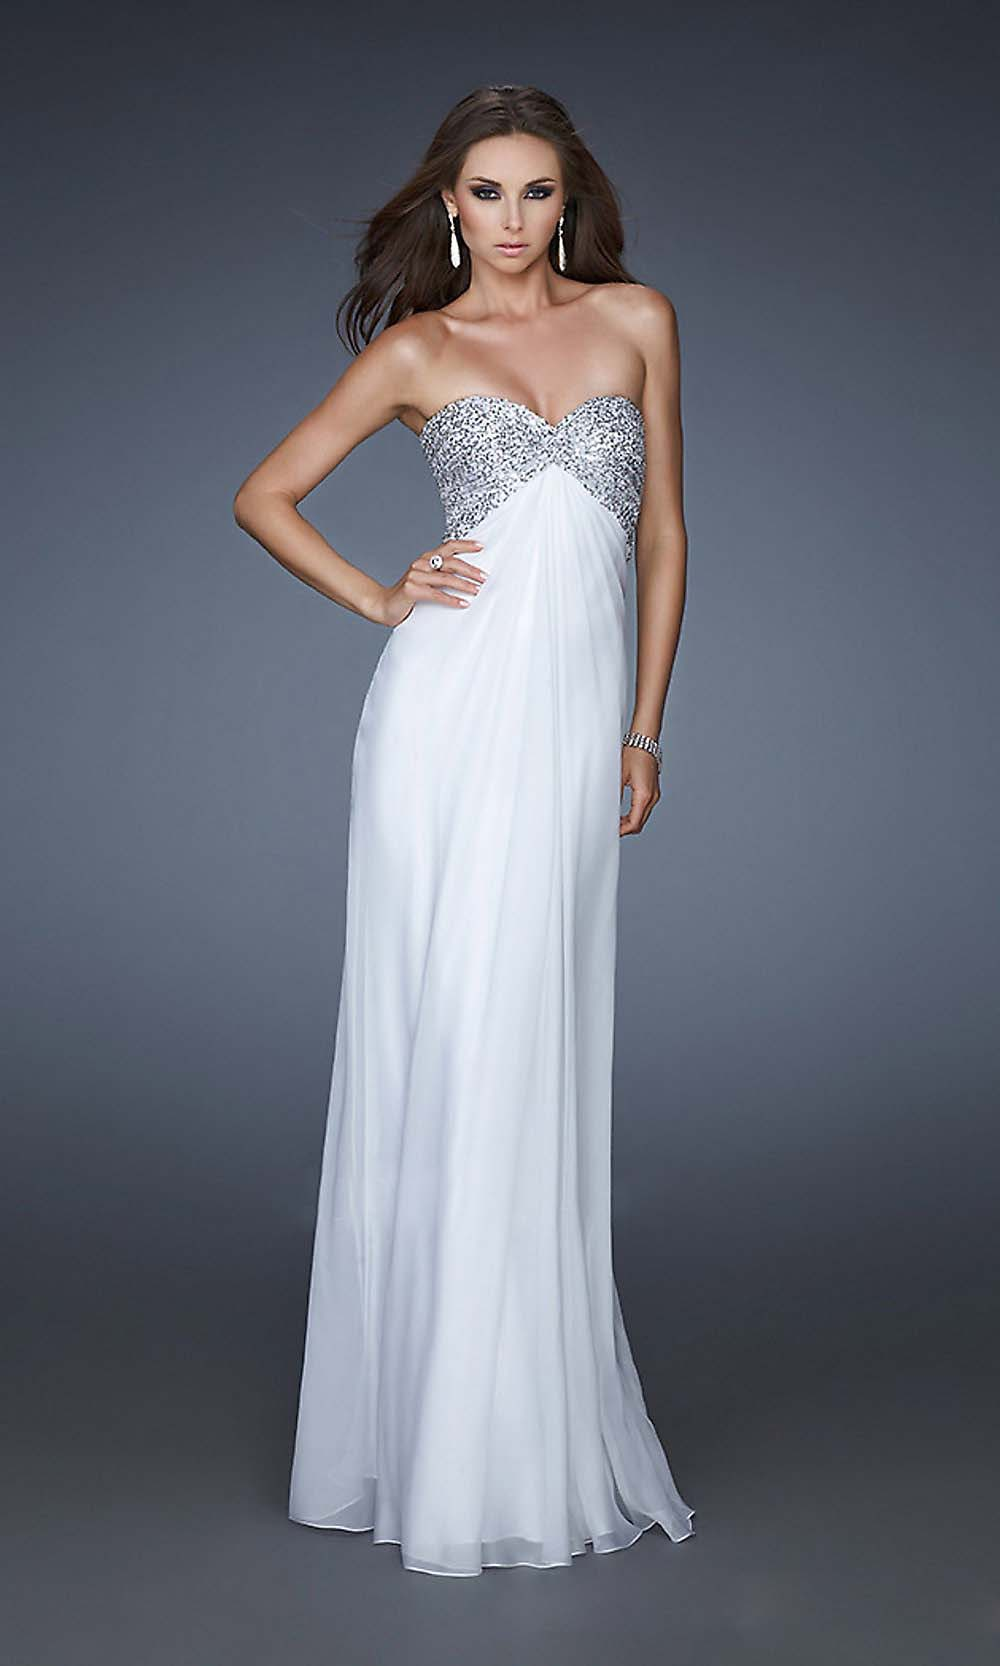 Empire prom dress, affordable prom dress, long prom dresses, long prom dress, evening dress